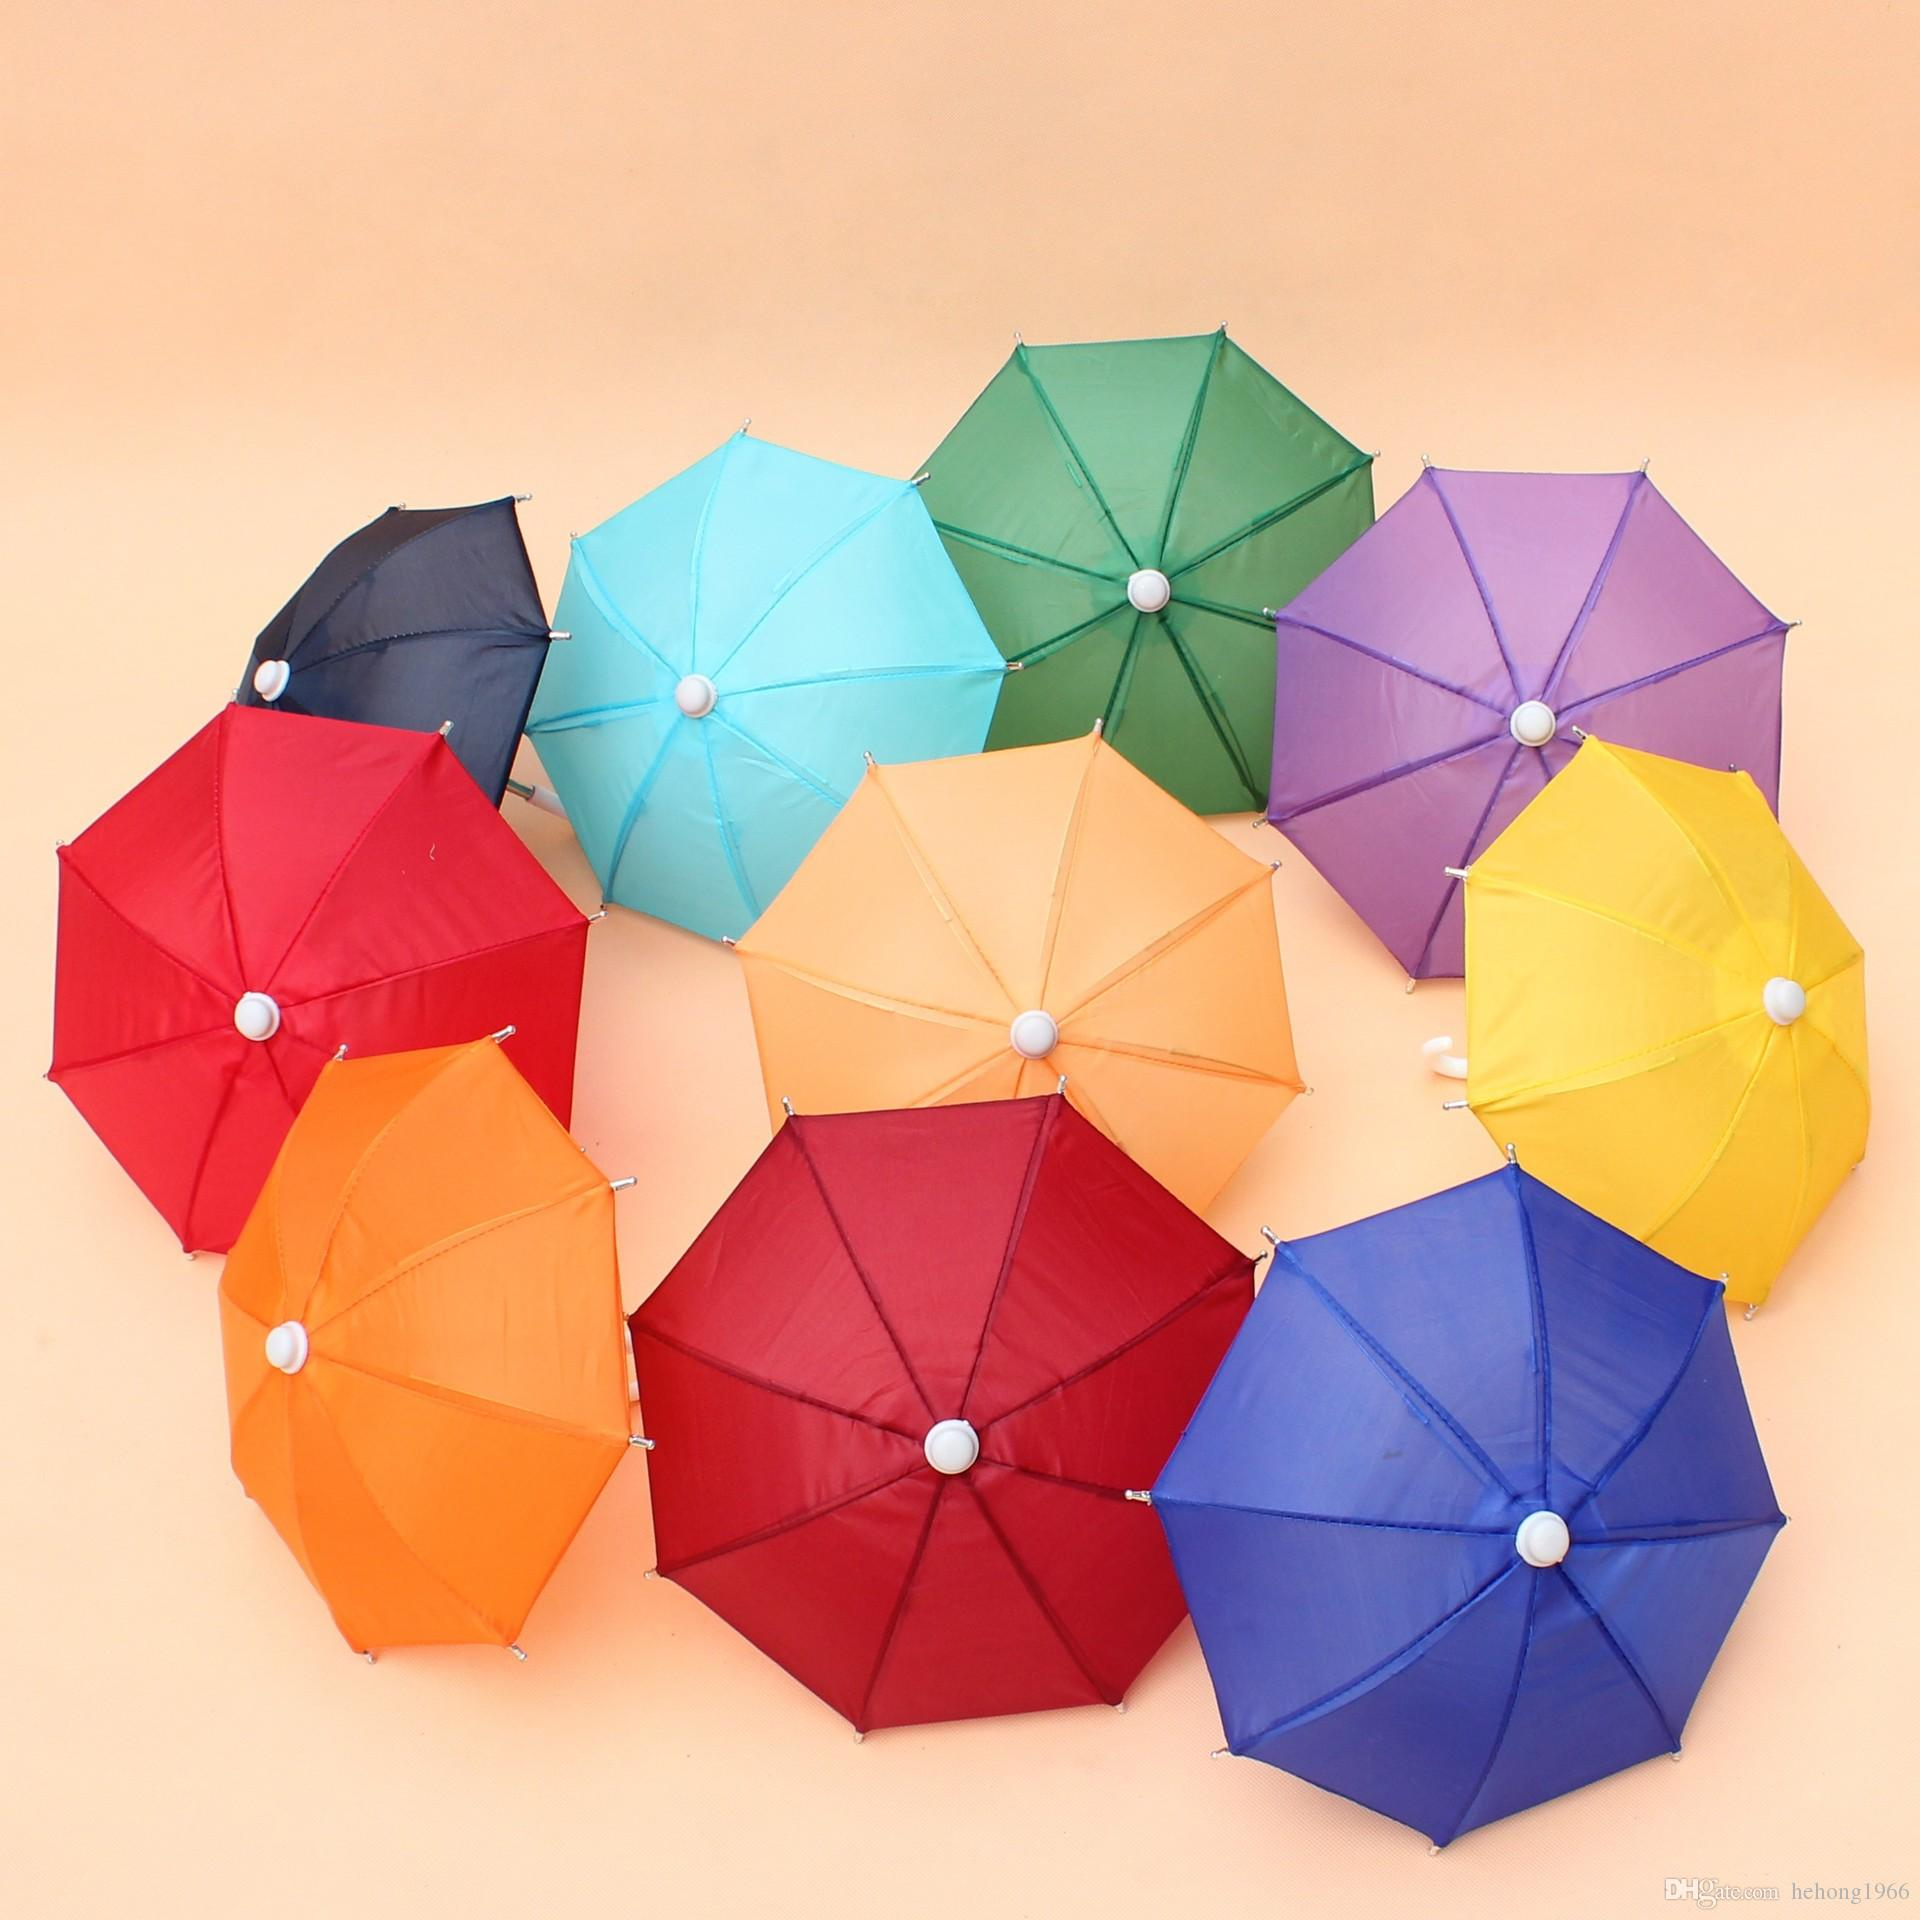 Shop Umbrellas Online Umbrella Mini Children Cartoon Bumbershoot Toy Prop Decorative Candy Color Straight Shank Bending Handle Easy Carry 2 5sy